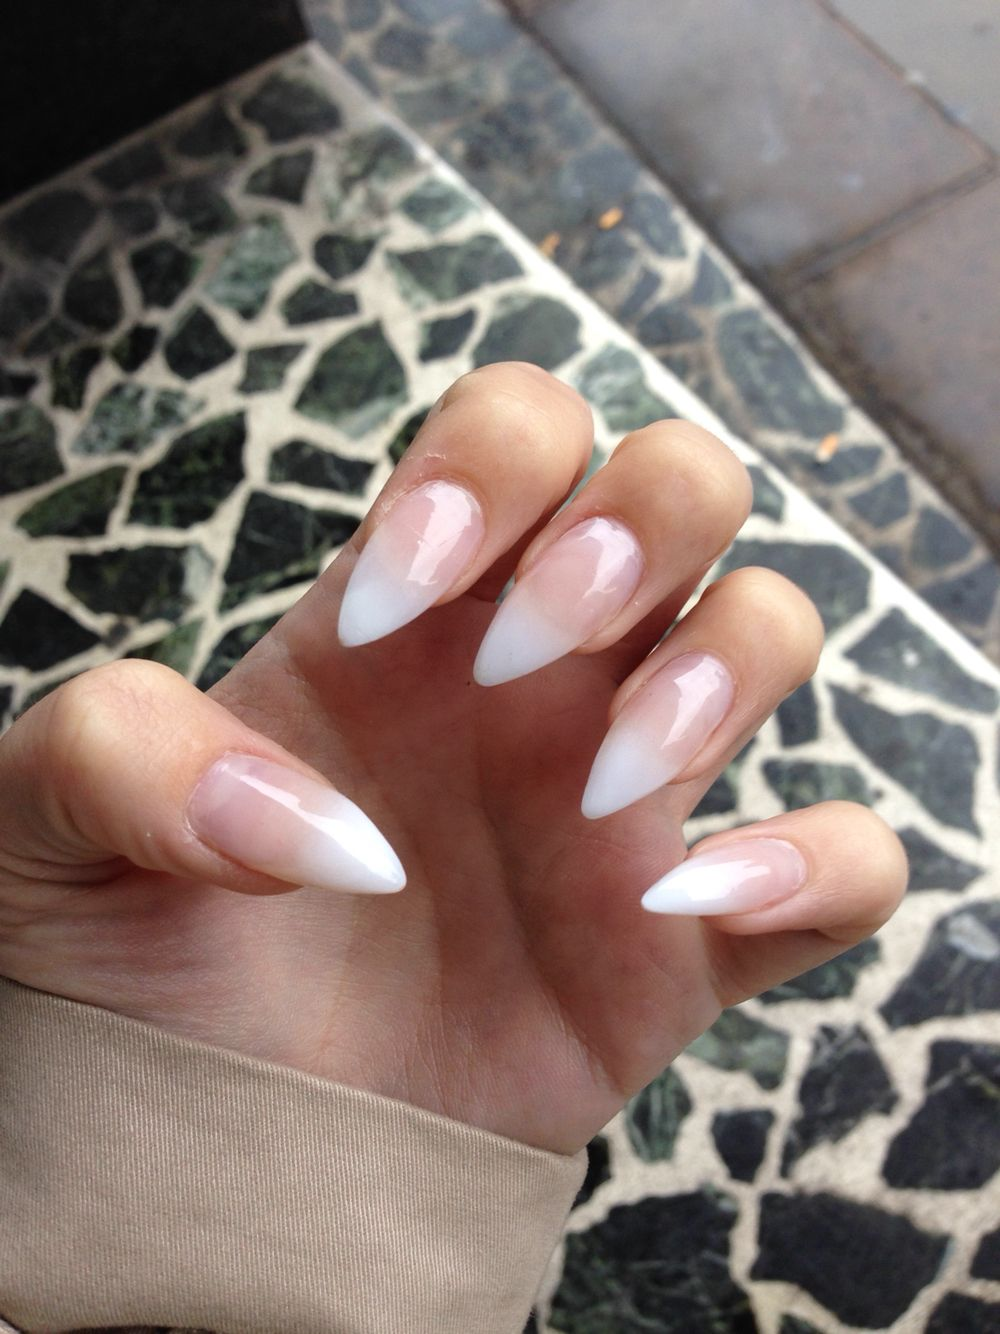 Although simple, I LOVE the faded French manicure, instead of harsh ...